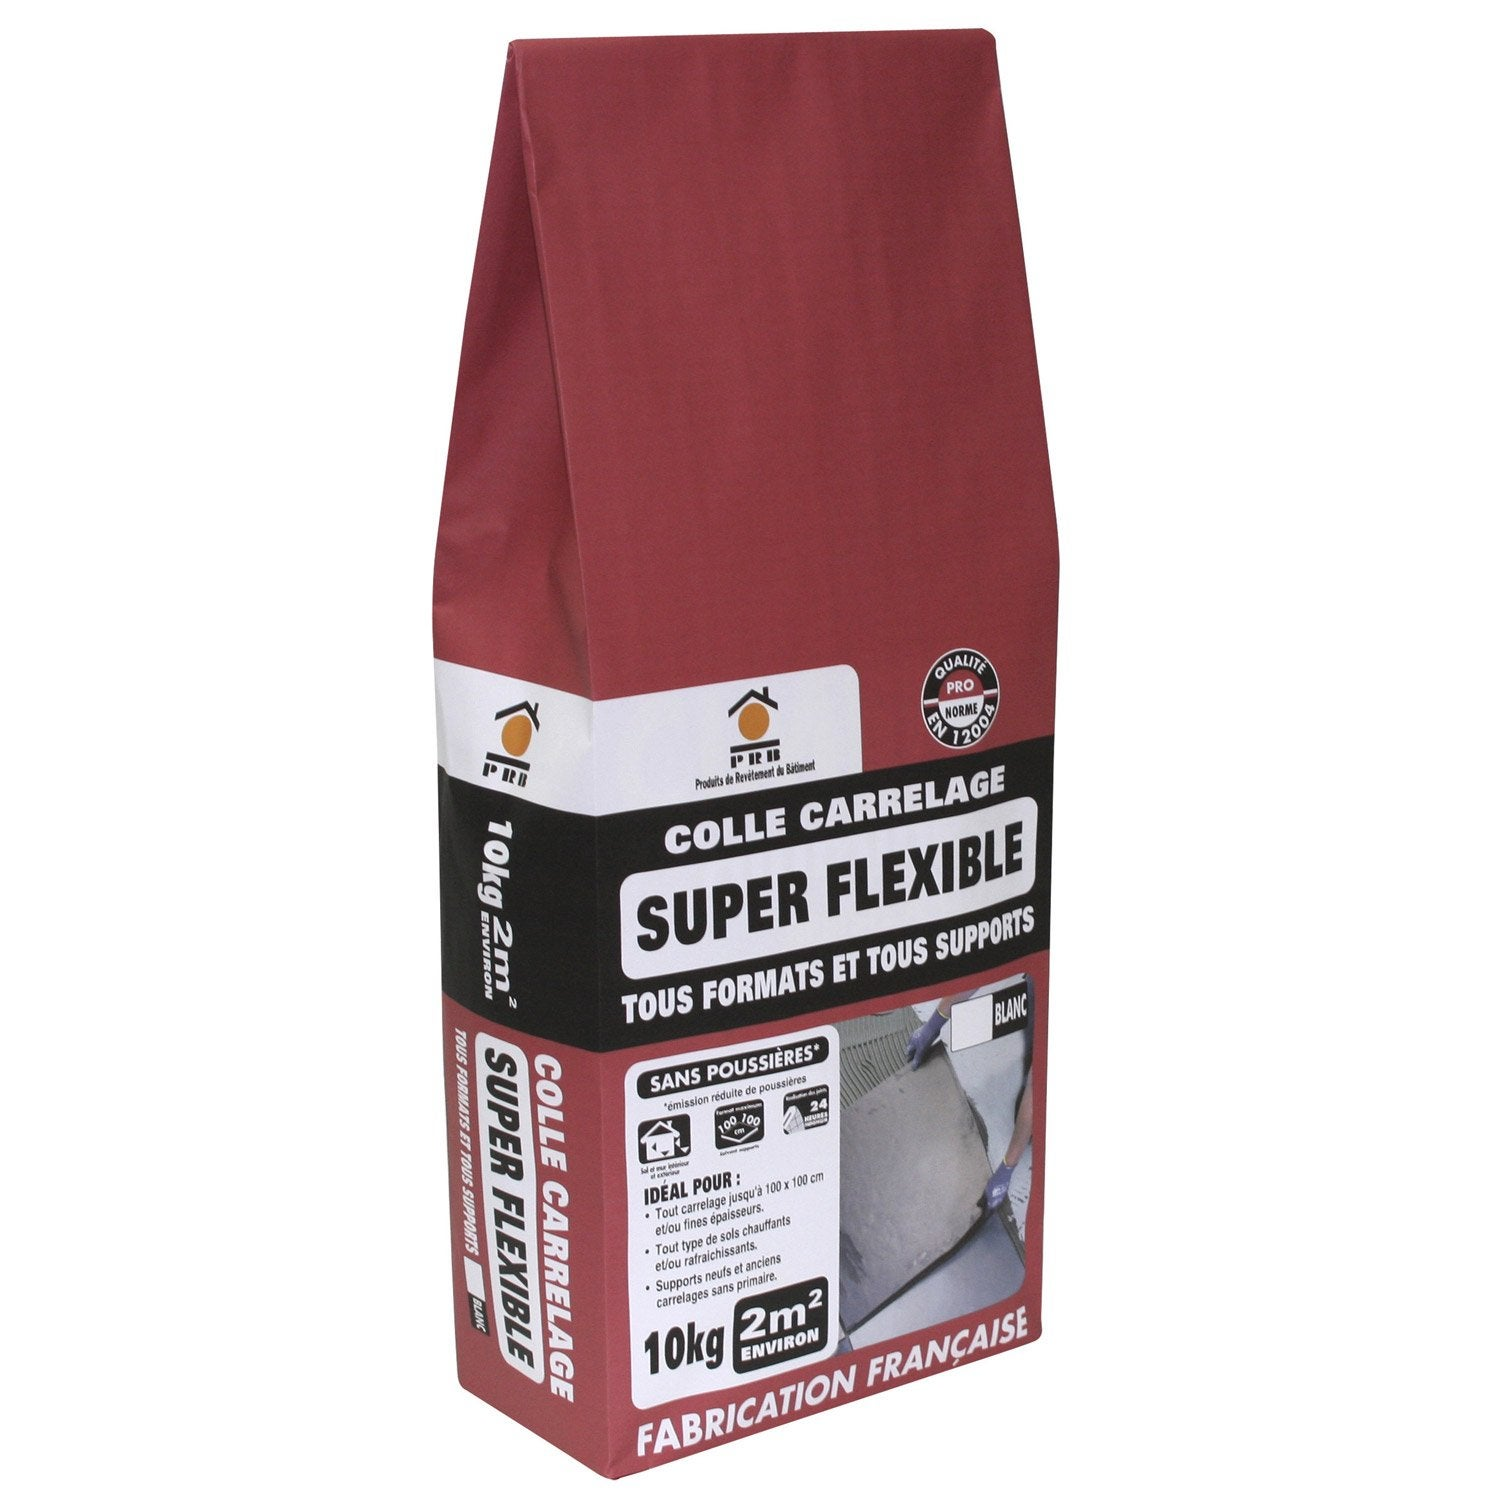 Mortier colle Superflexible pour carrelage mur et sol, 10 kg, blanc